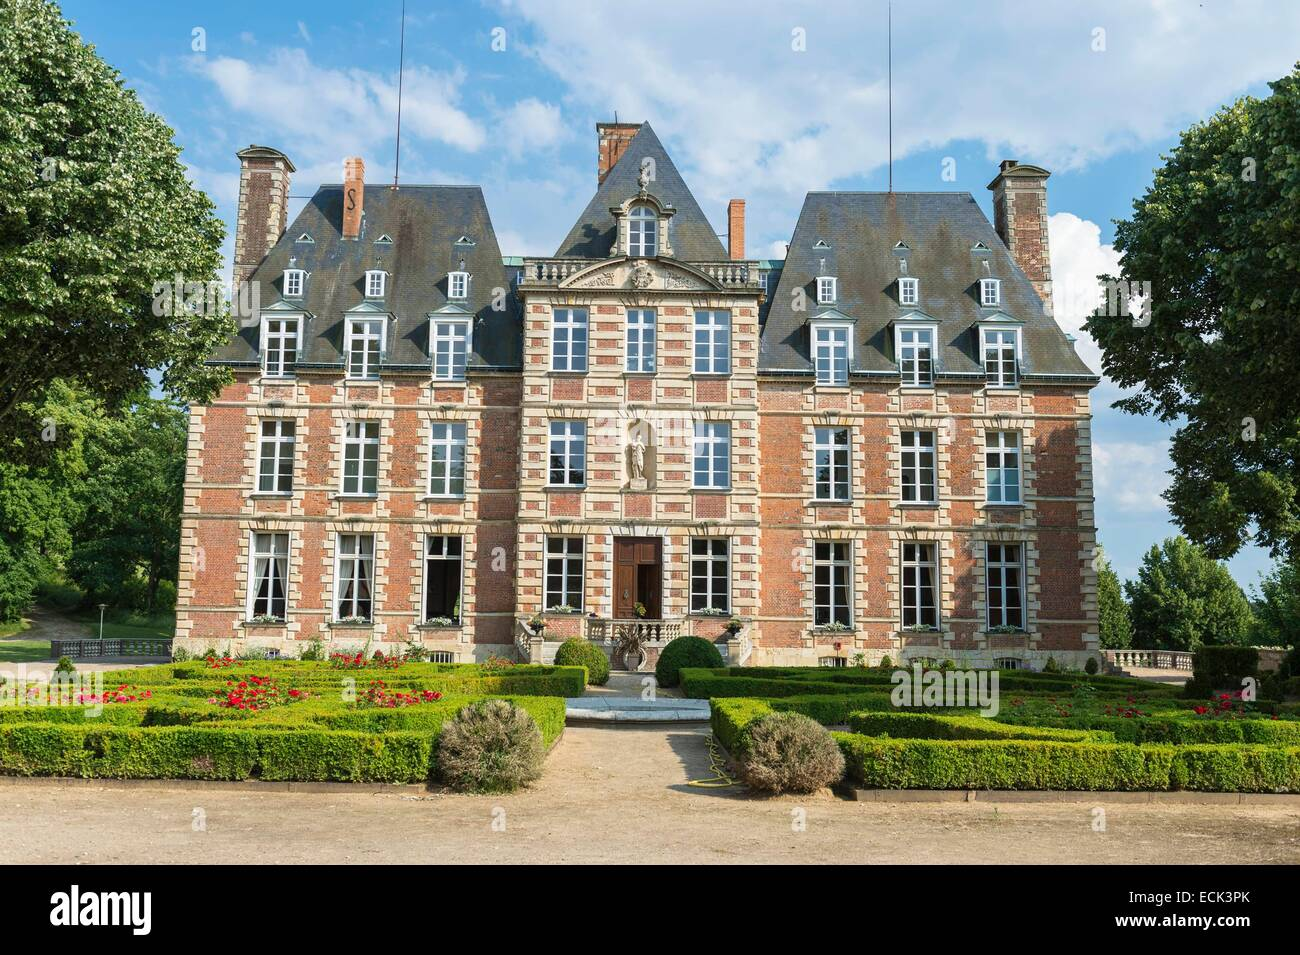 16th Century French Home - france-eure-menilles-the-16th-century-castle-ECK3PK_Amazing 16th Century French Home - france-eure-menilles-the-16th-century-castle-ECK3PK  Trends_13614.jpg